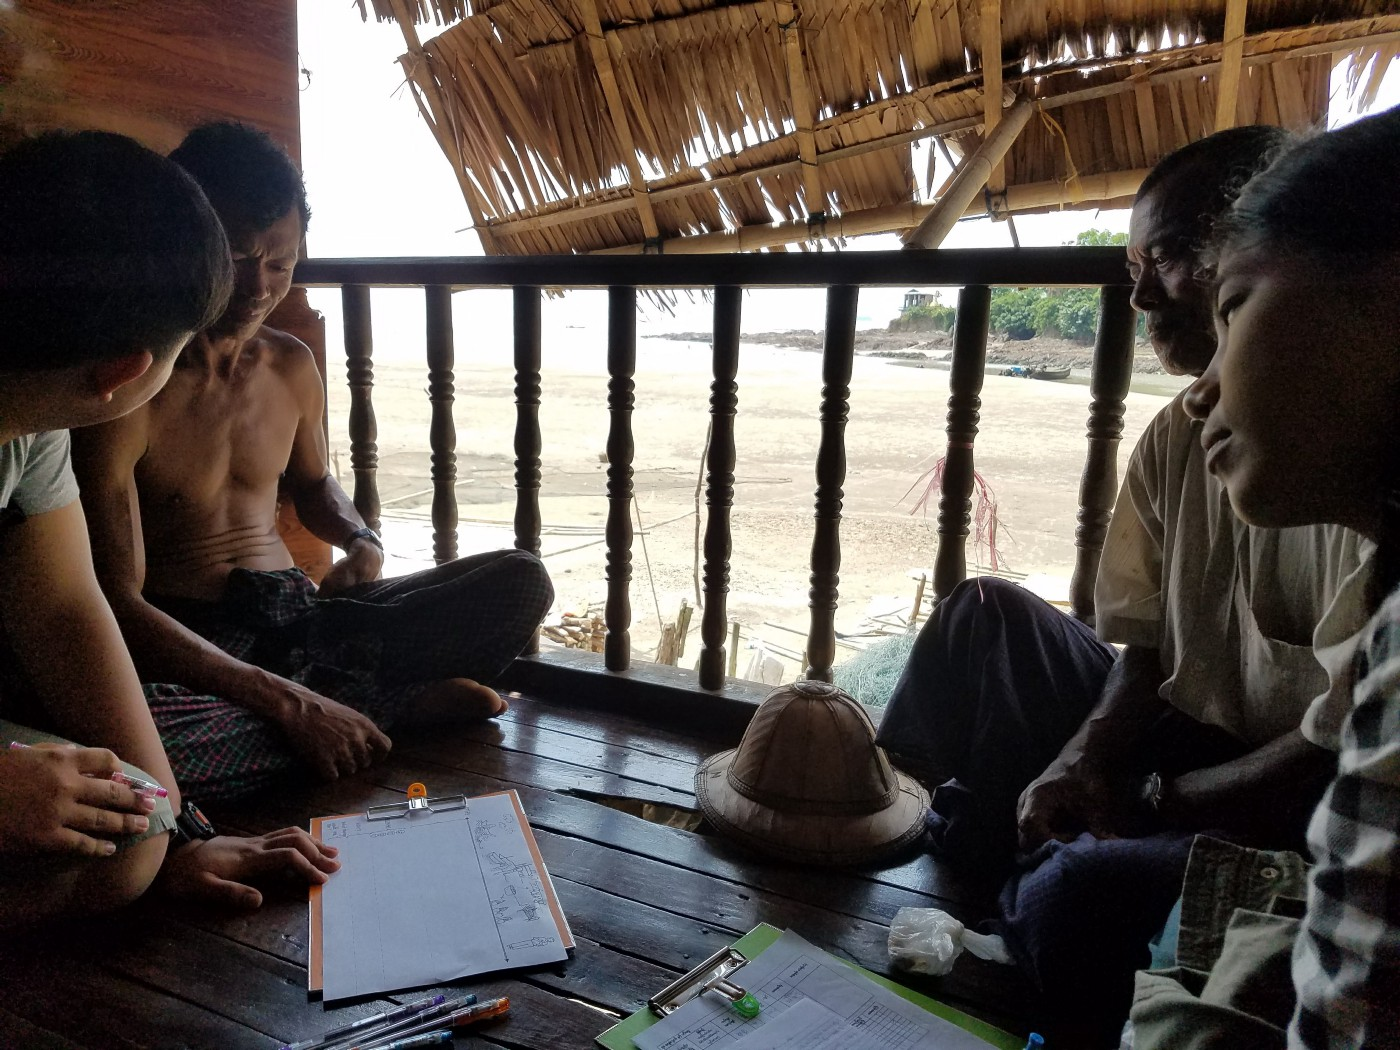 A group of people sit on a small porch overlooking a beach. One young researcher is interviewing two fishers, with another student looking on.